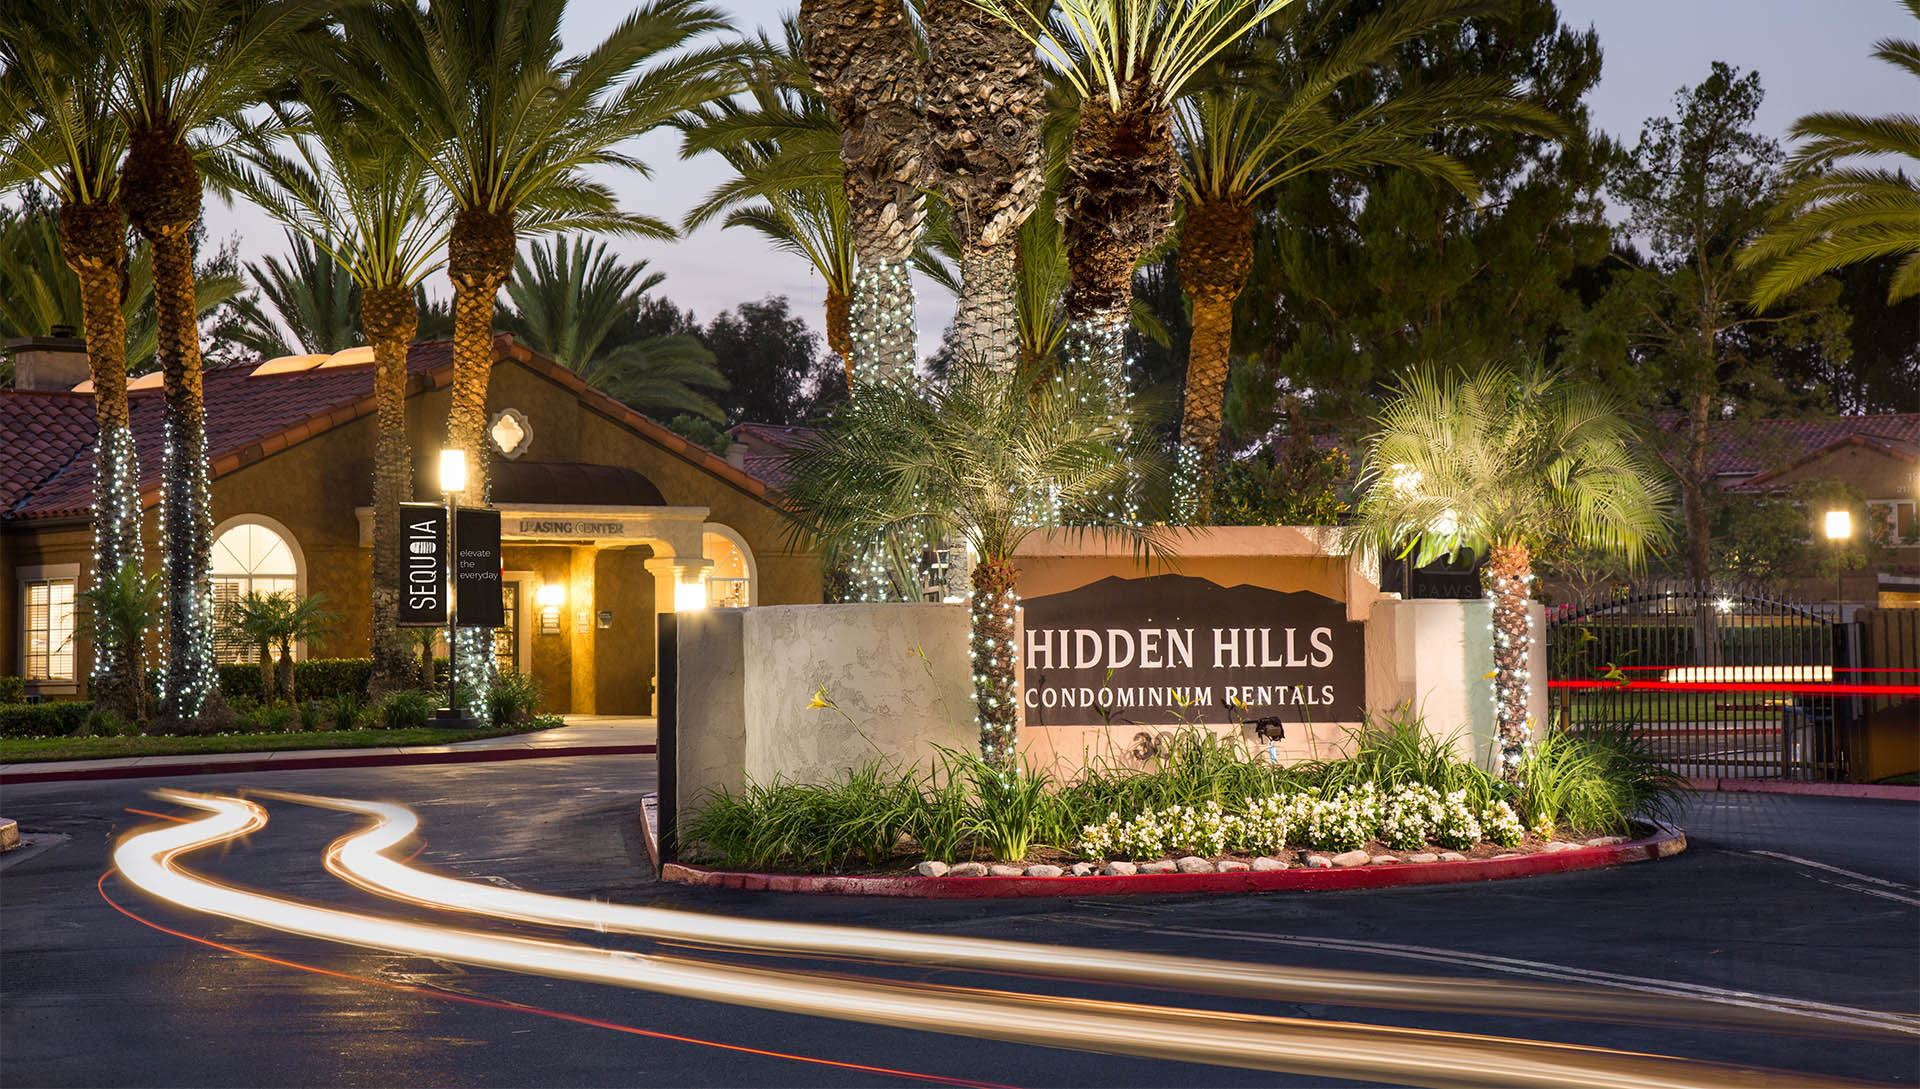 Laguna Niguel Ca Apartments Hidden Hills Condominium